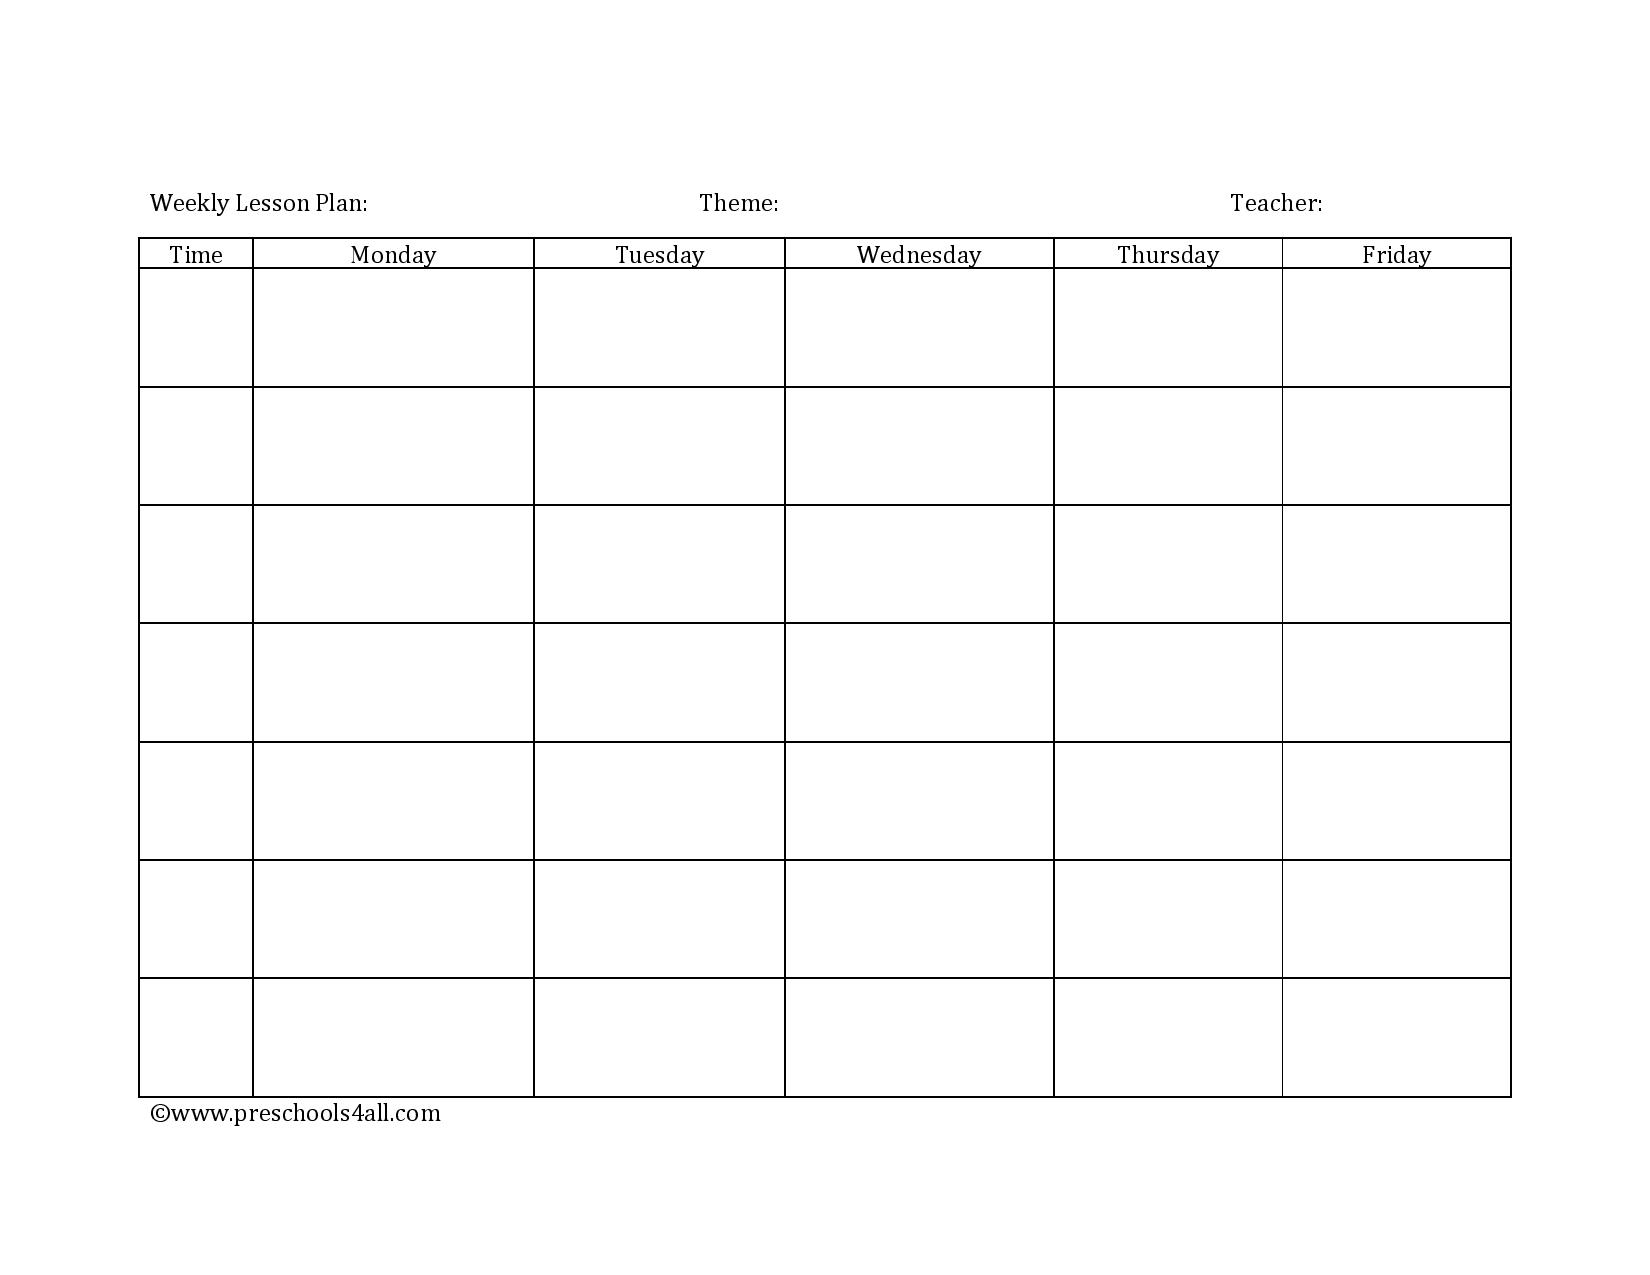 Blank Lesson Plan Template Novasatfmtk - Free lesson plans templates